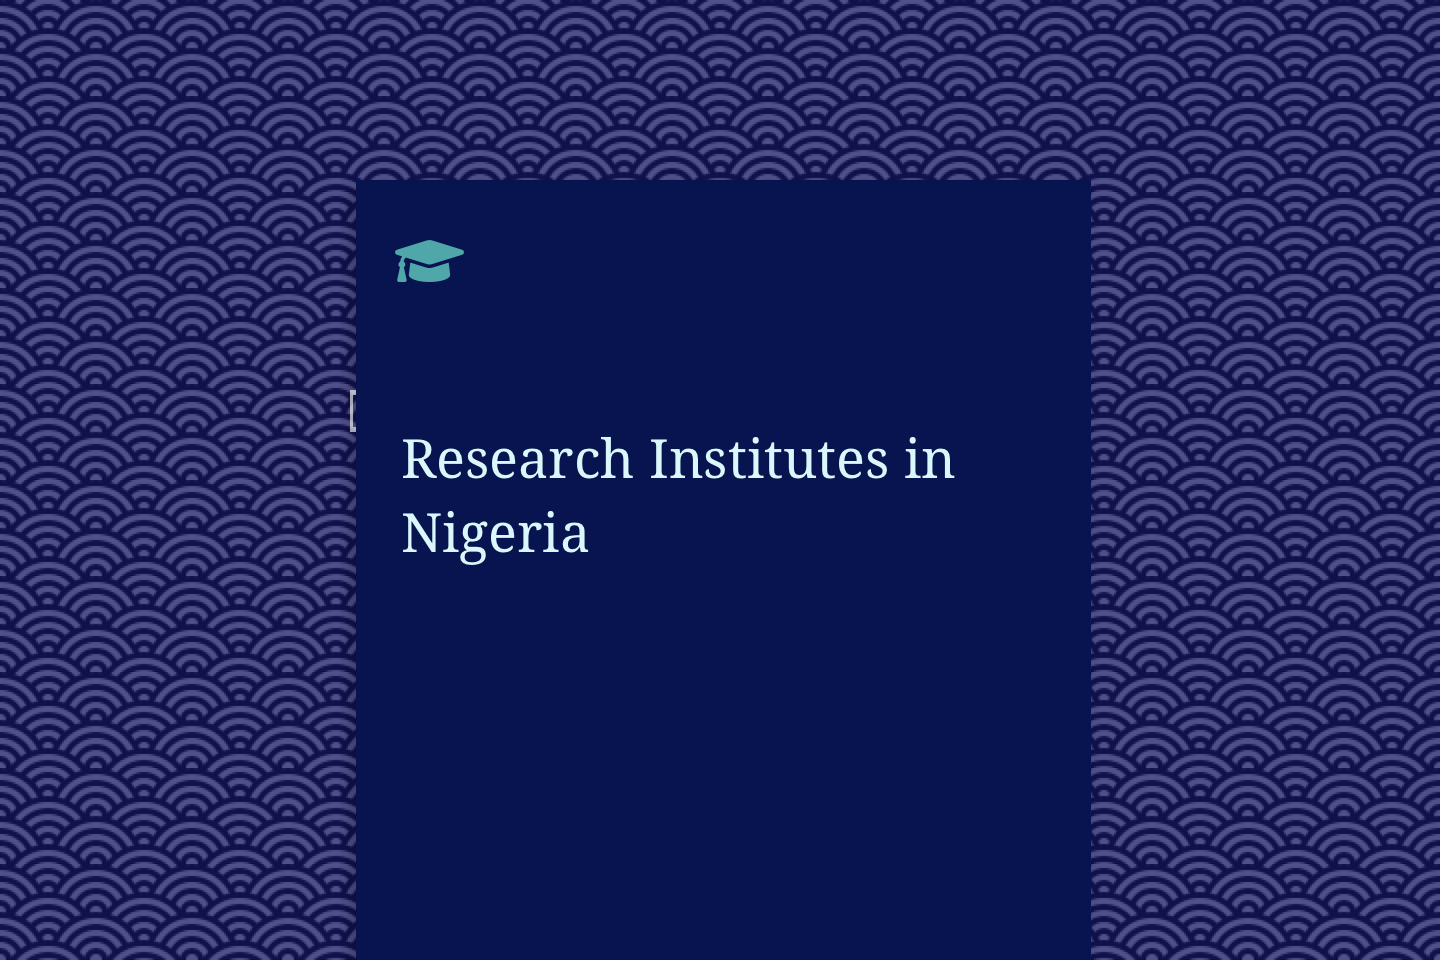 Research Institutes in Nigeria